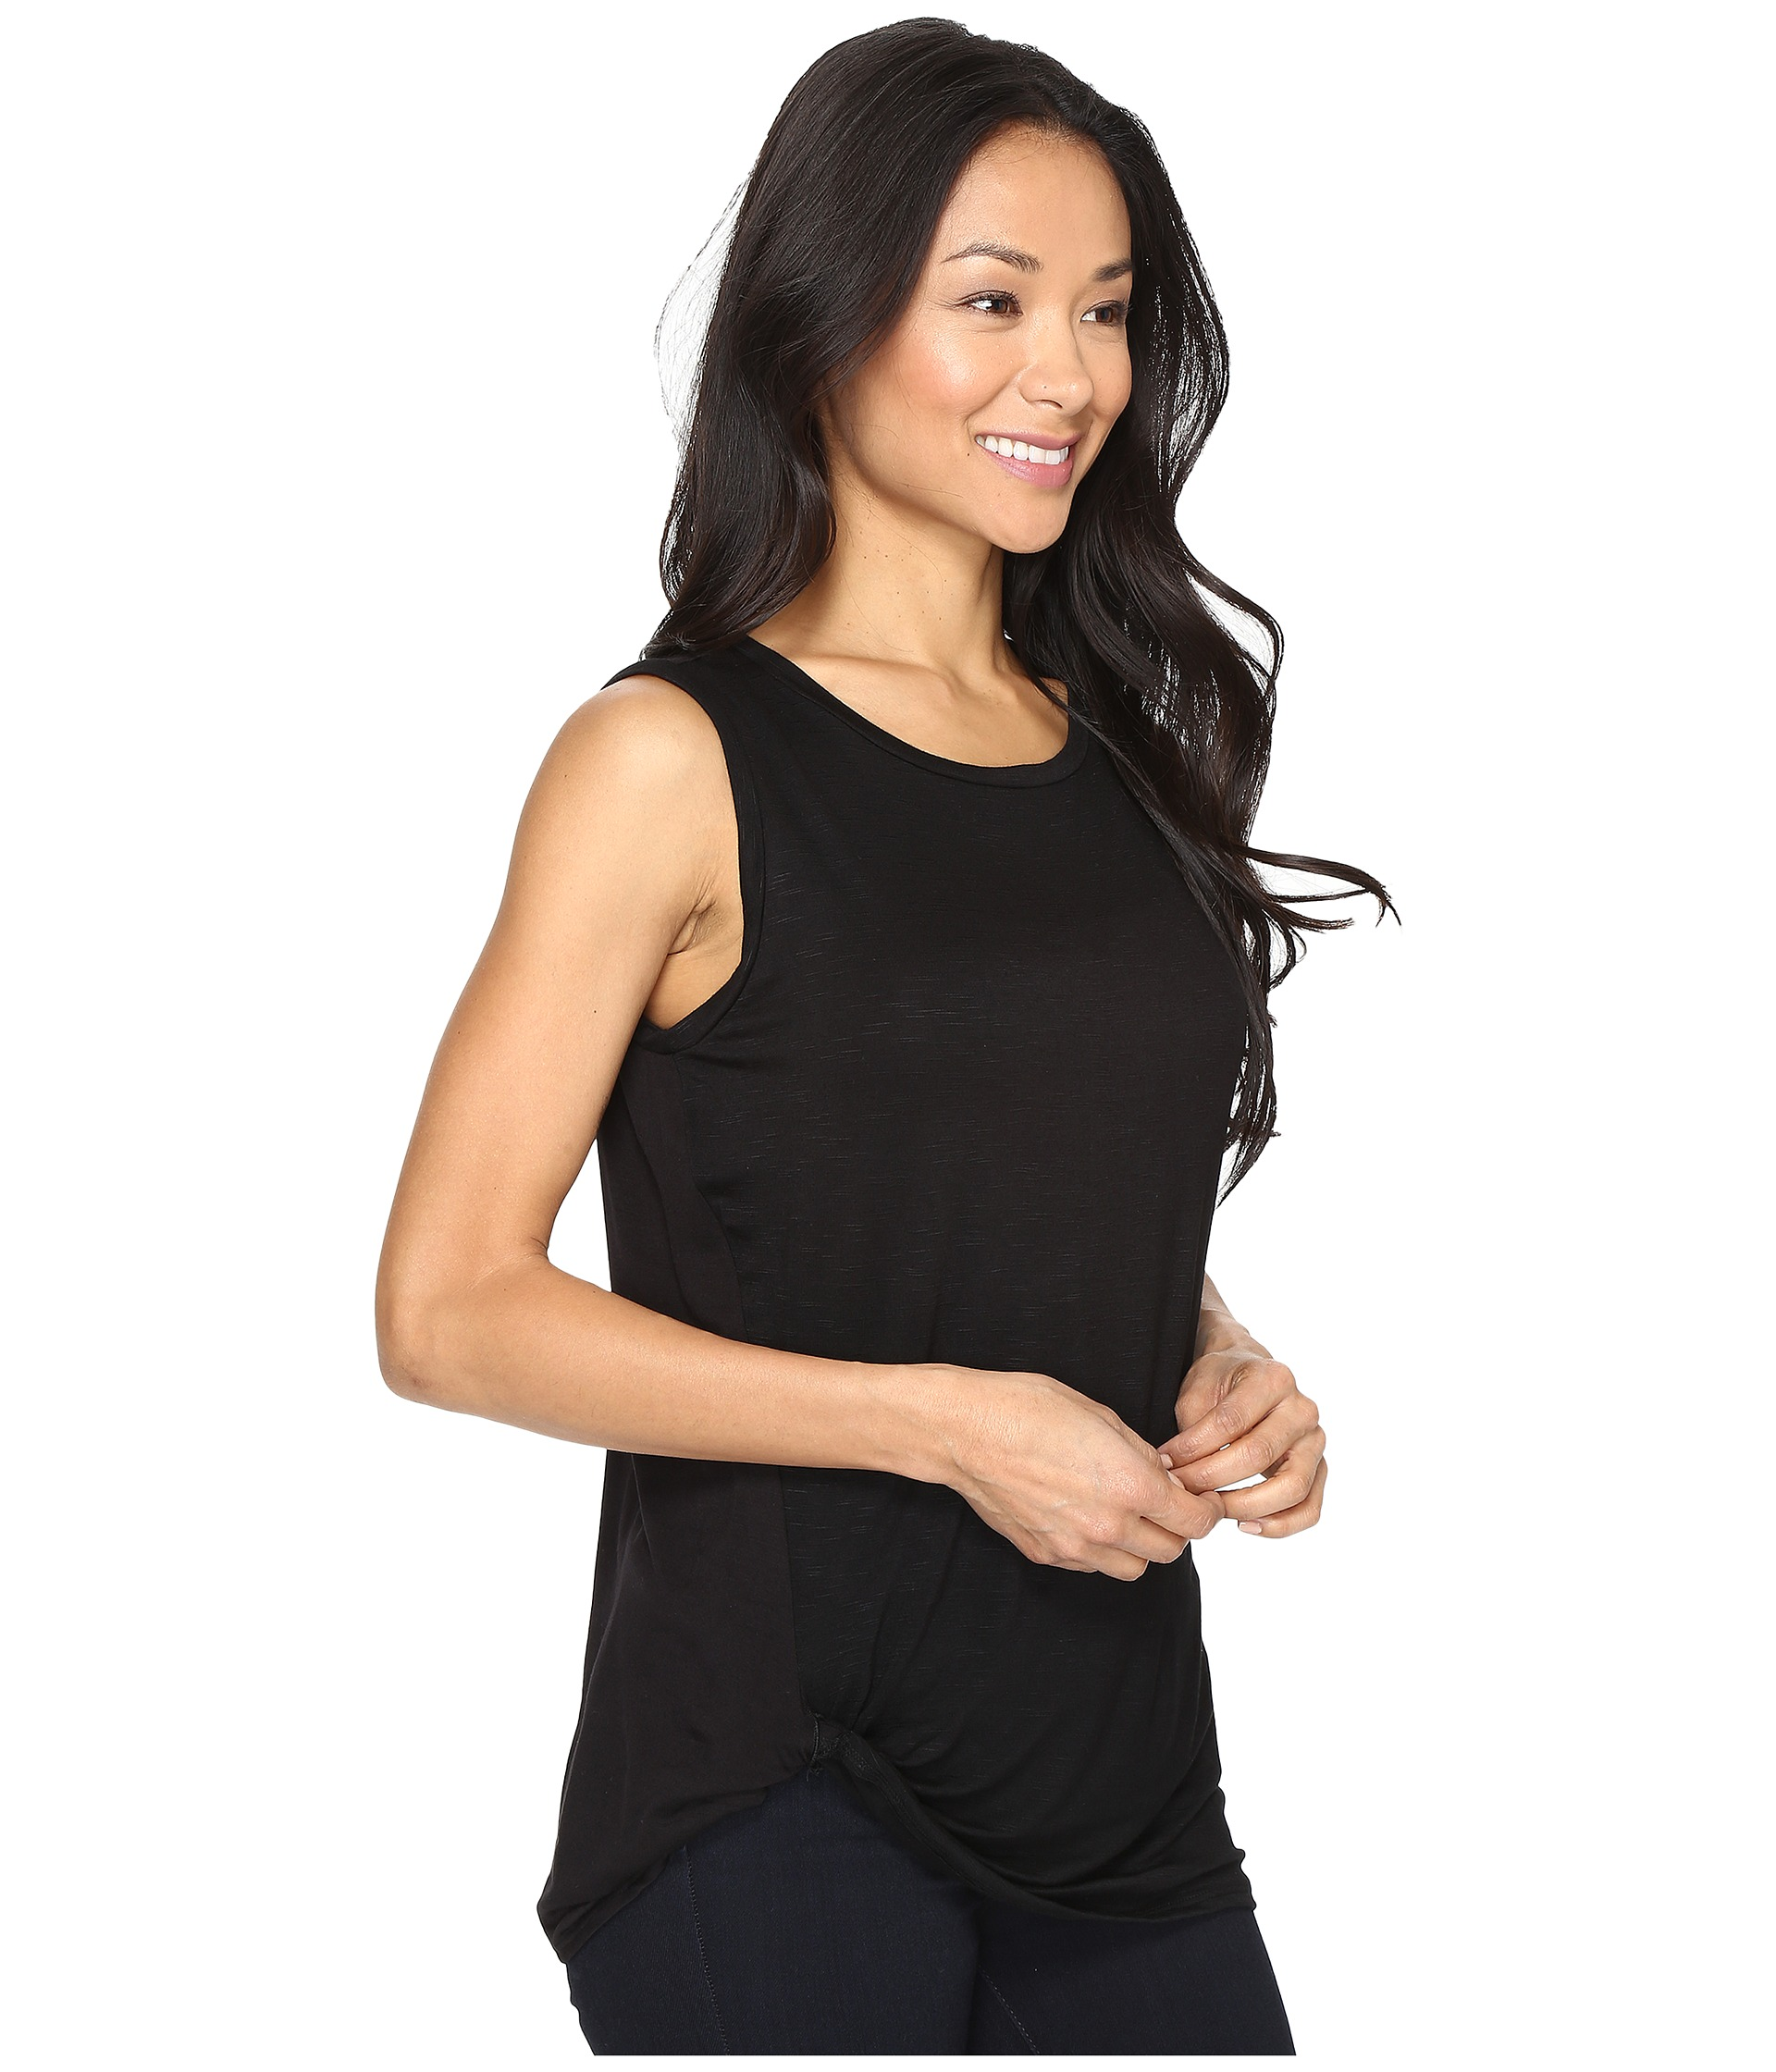 b collection by bobeau side knot tank top